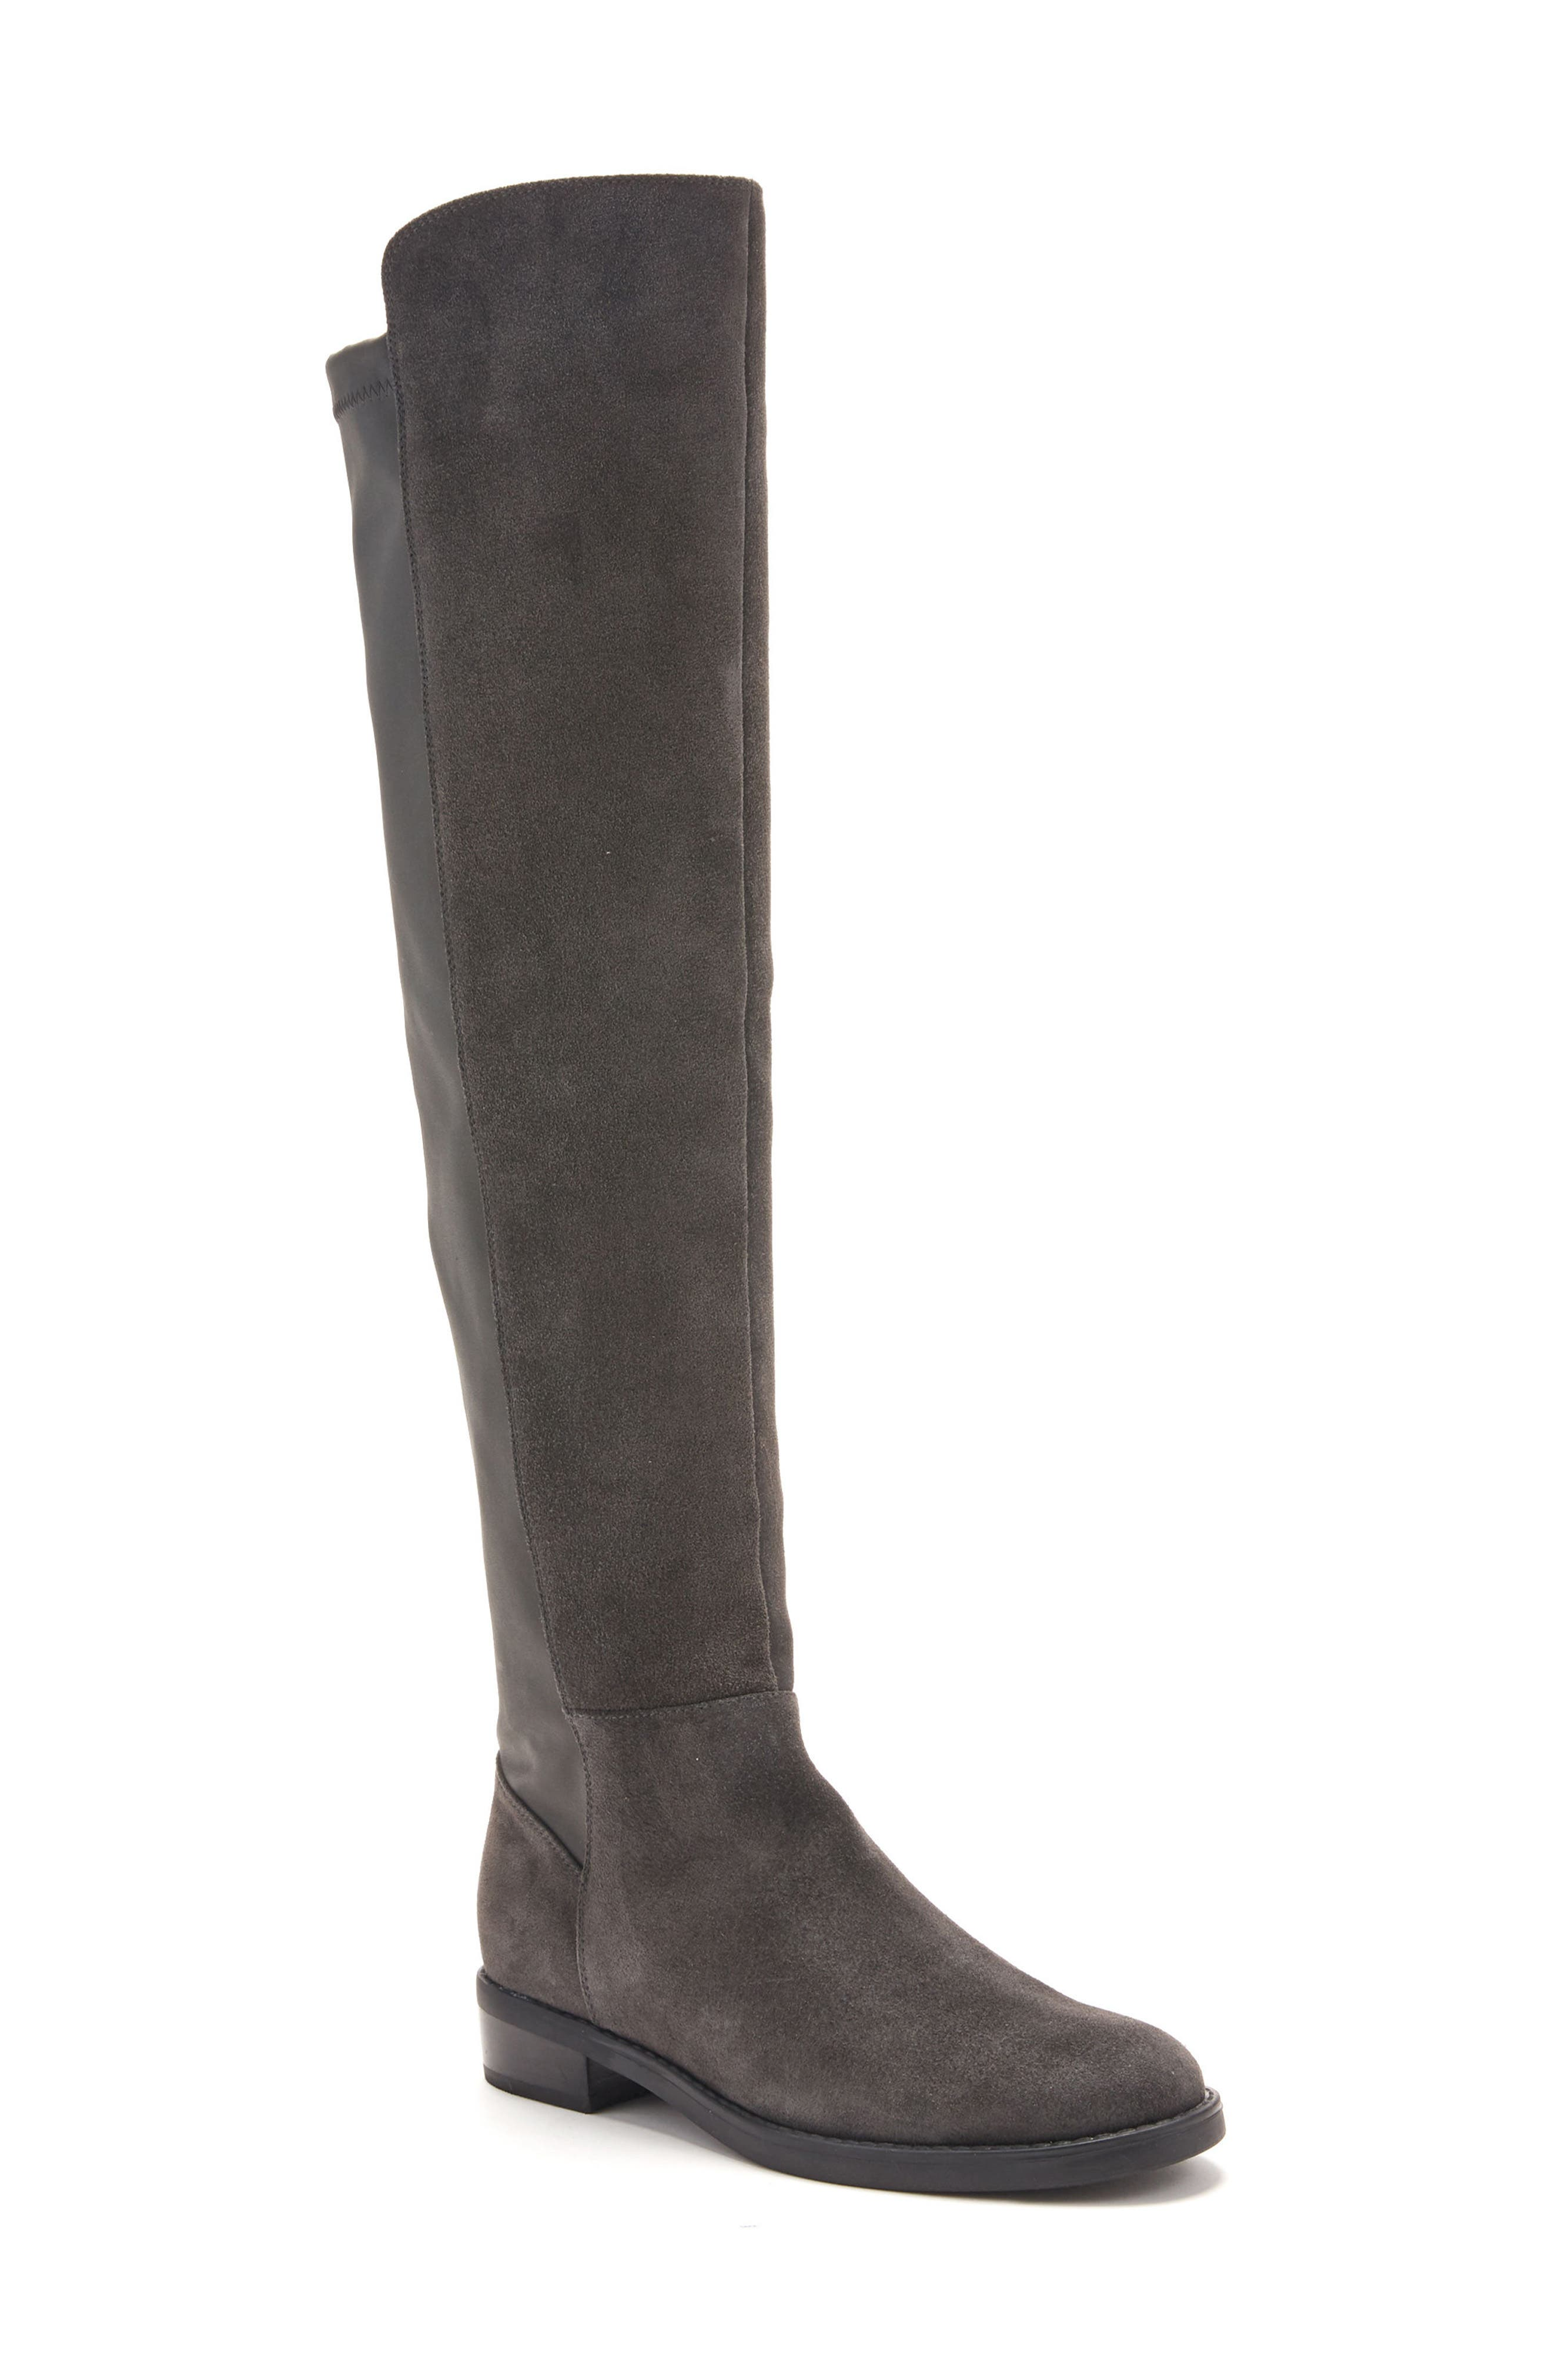 Olivia Knee High Boot,                         Main,                         color, Grey Suede